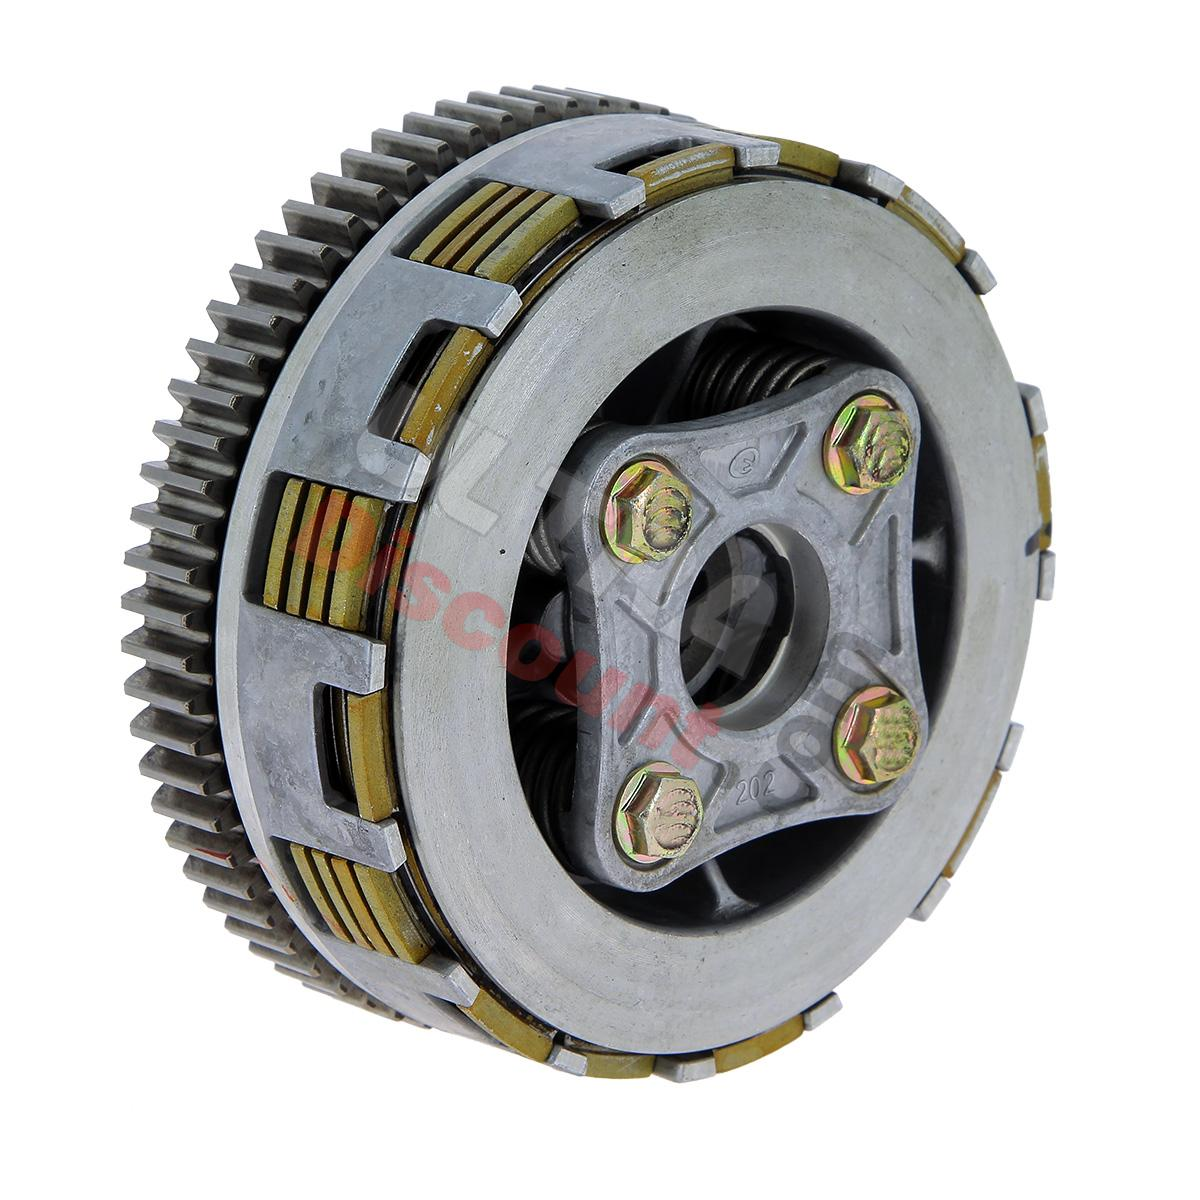 complete clutch for dax engine 125cc engine dax dax skyteam spare parts ud. Black Bedroom Furniture Sets. Home Design Ideas